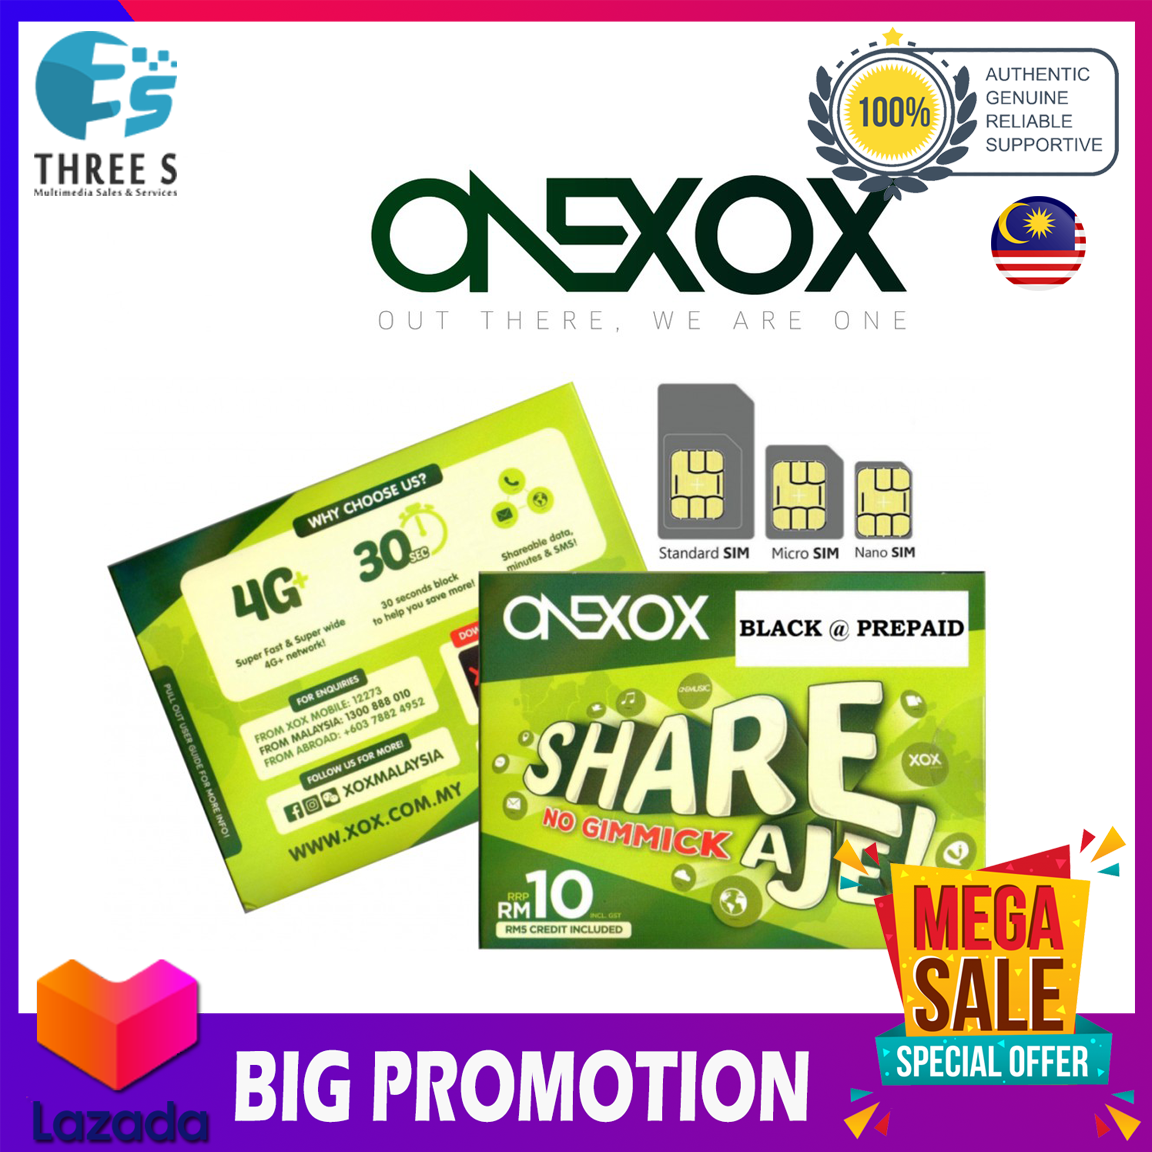 [XOXMOBILE] ONEXOX SimPack NEW Sim Card FREE RM5, 28 Months Validity, 1800 SMS